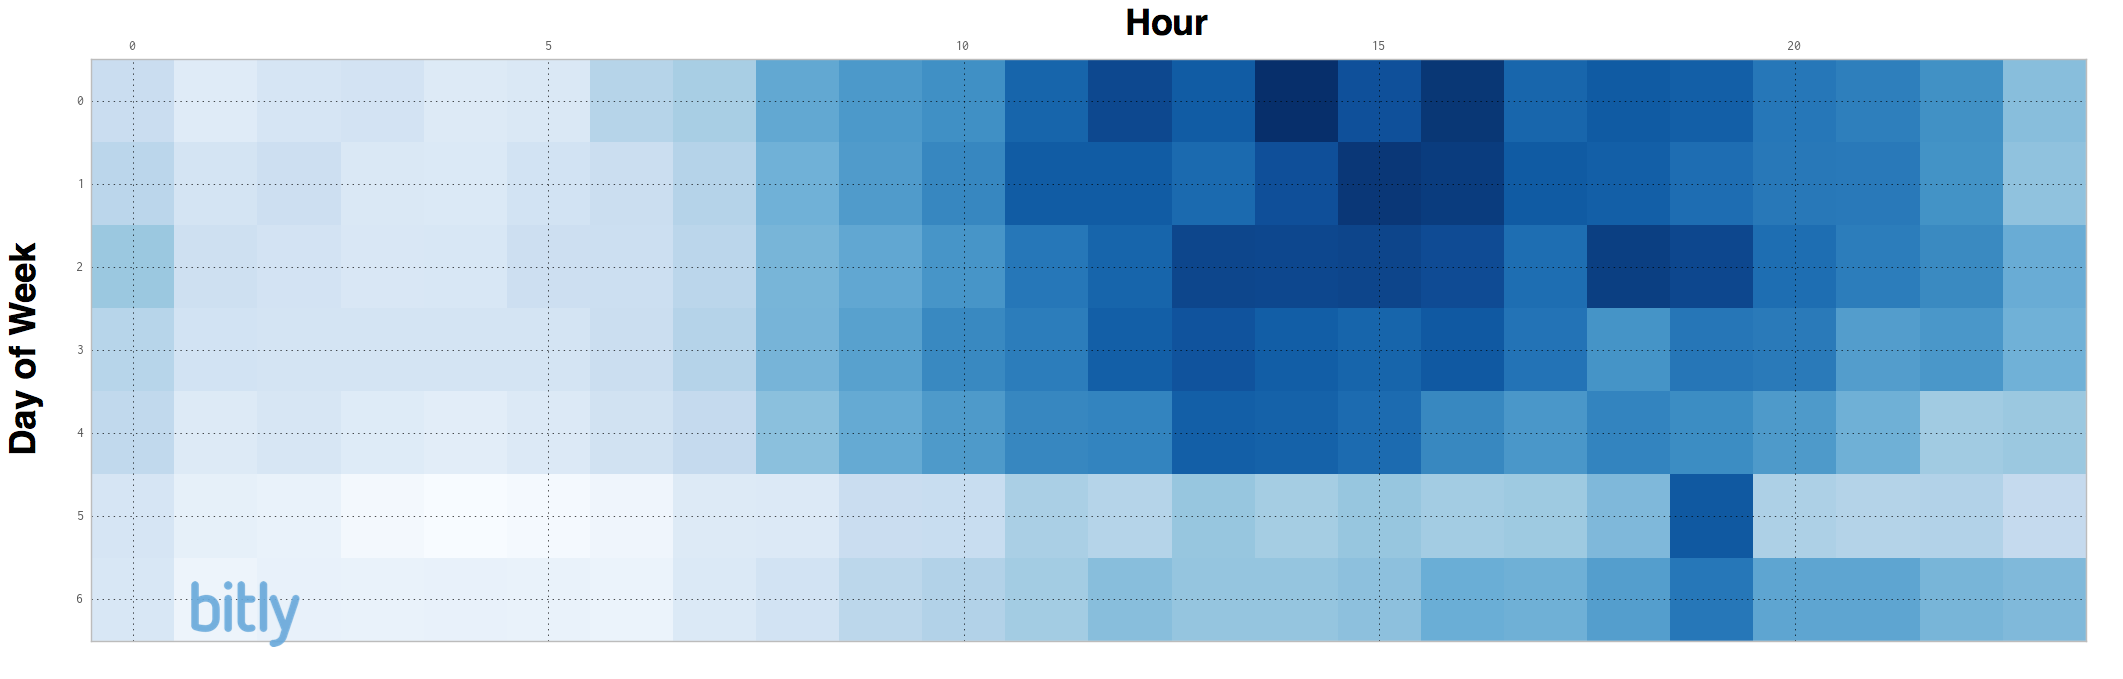 Best Times to Share on Twitter and Facebook for Max Impressions